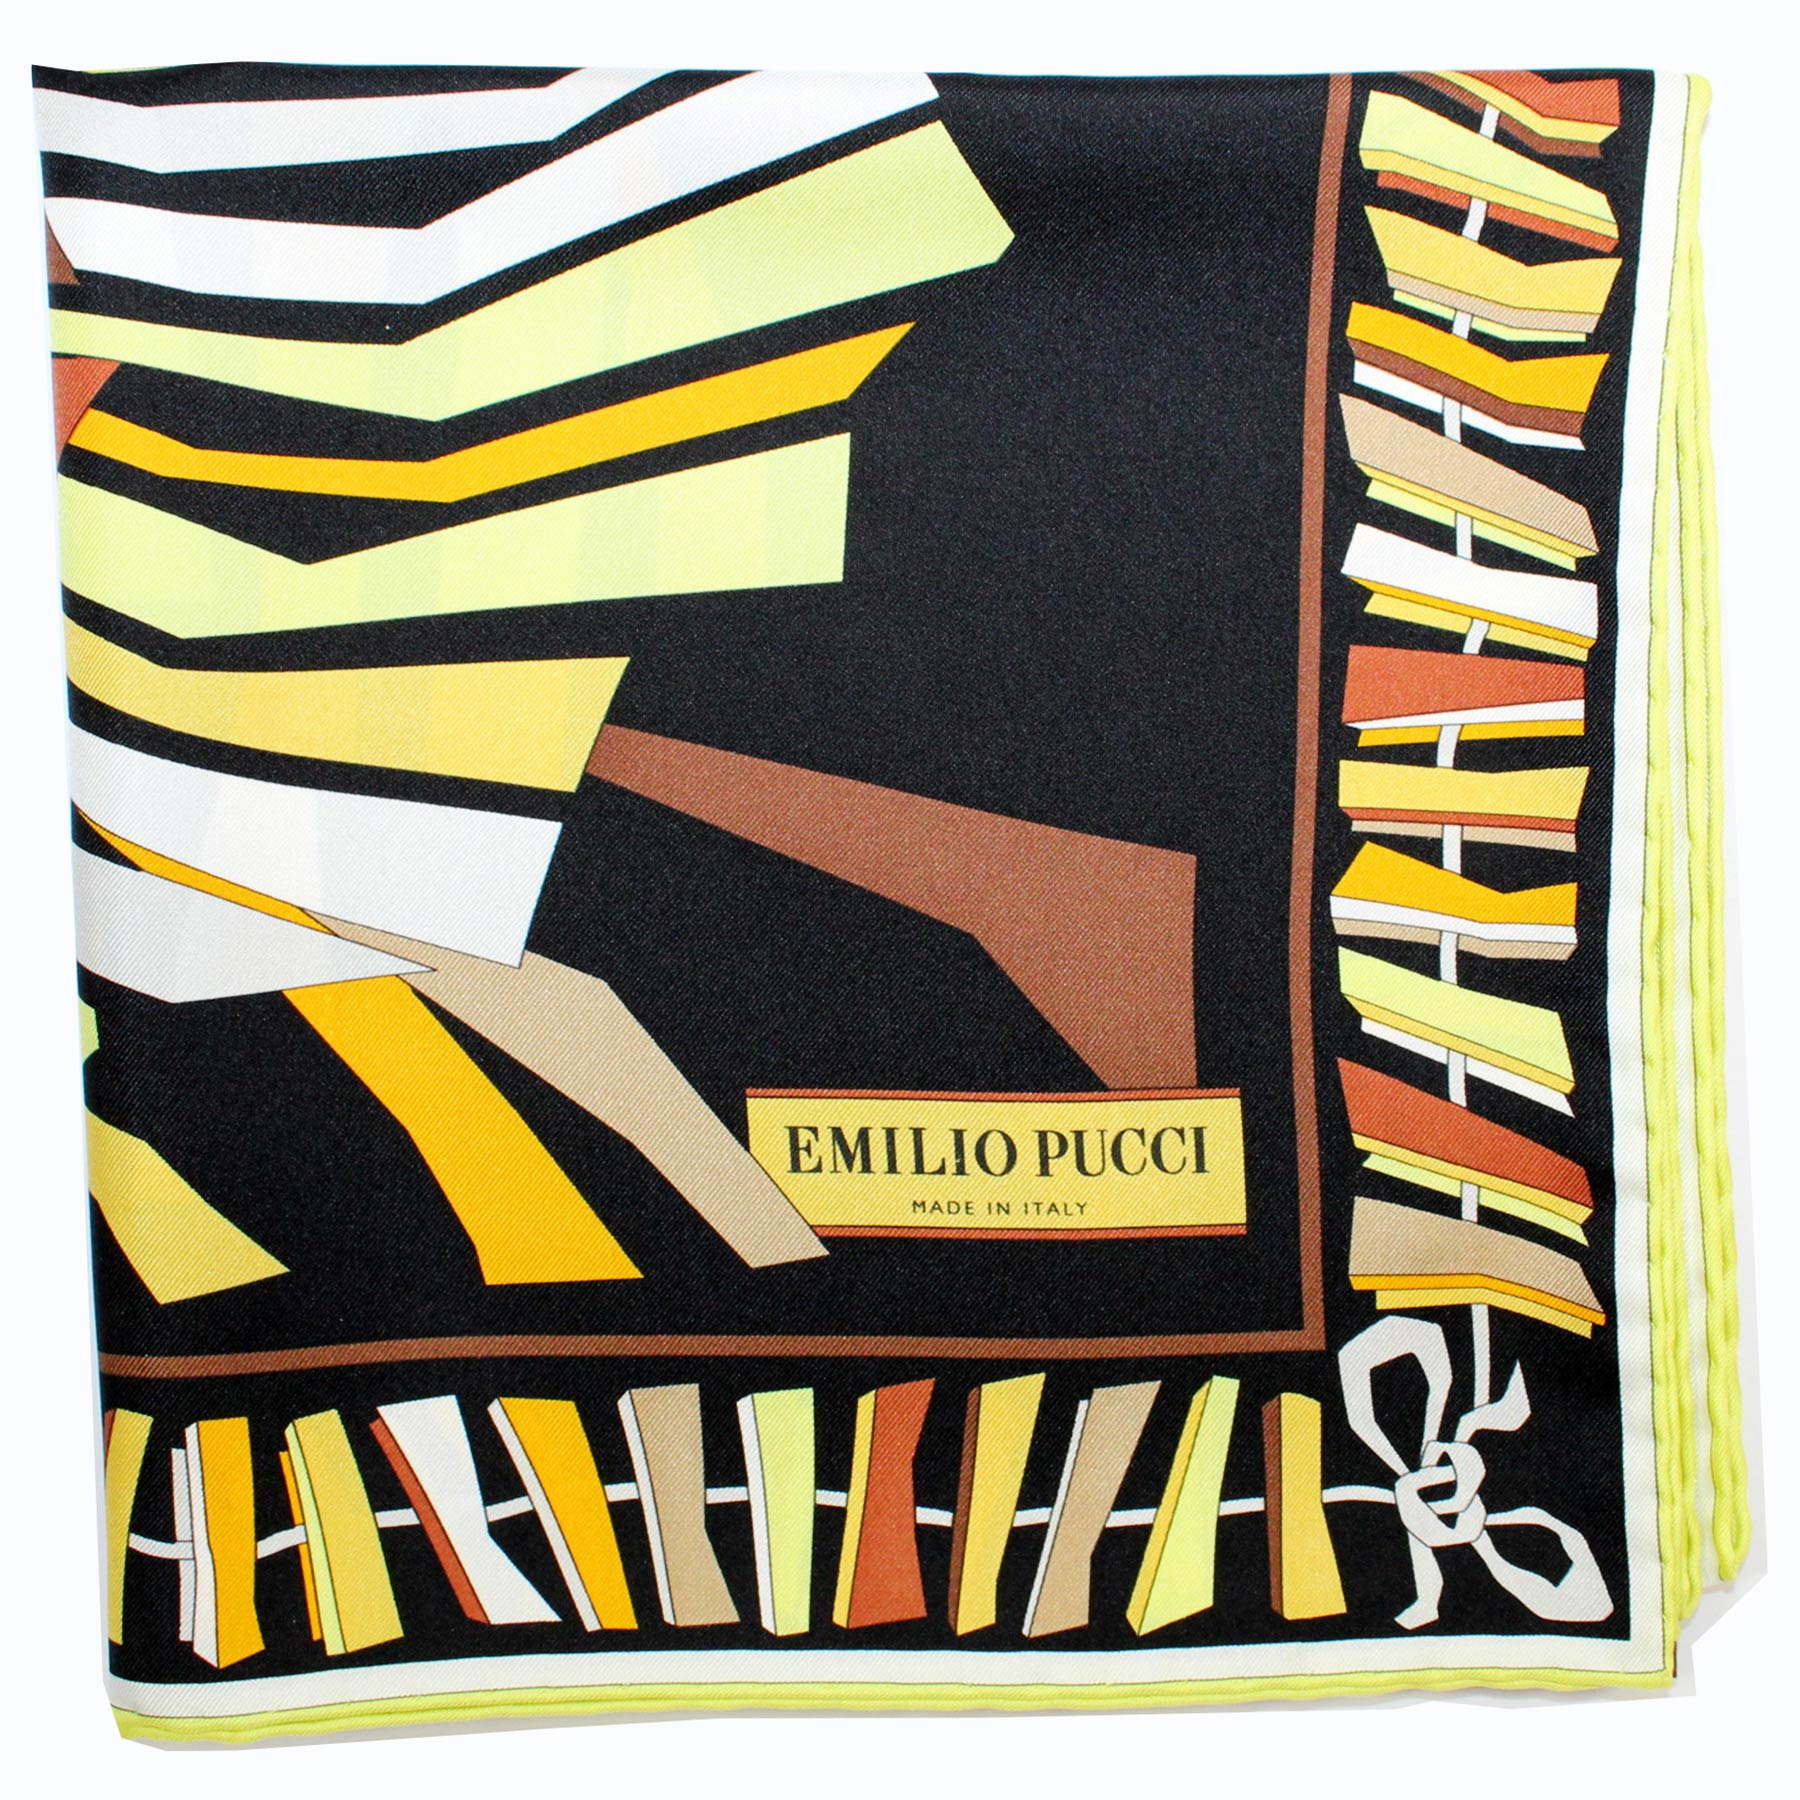 Emilio Pucci Scarf Black Brown Yellow Design - Large Twill Silk Square Scarf